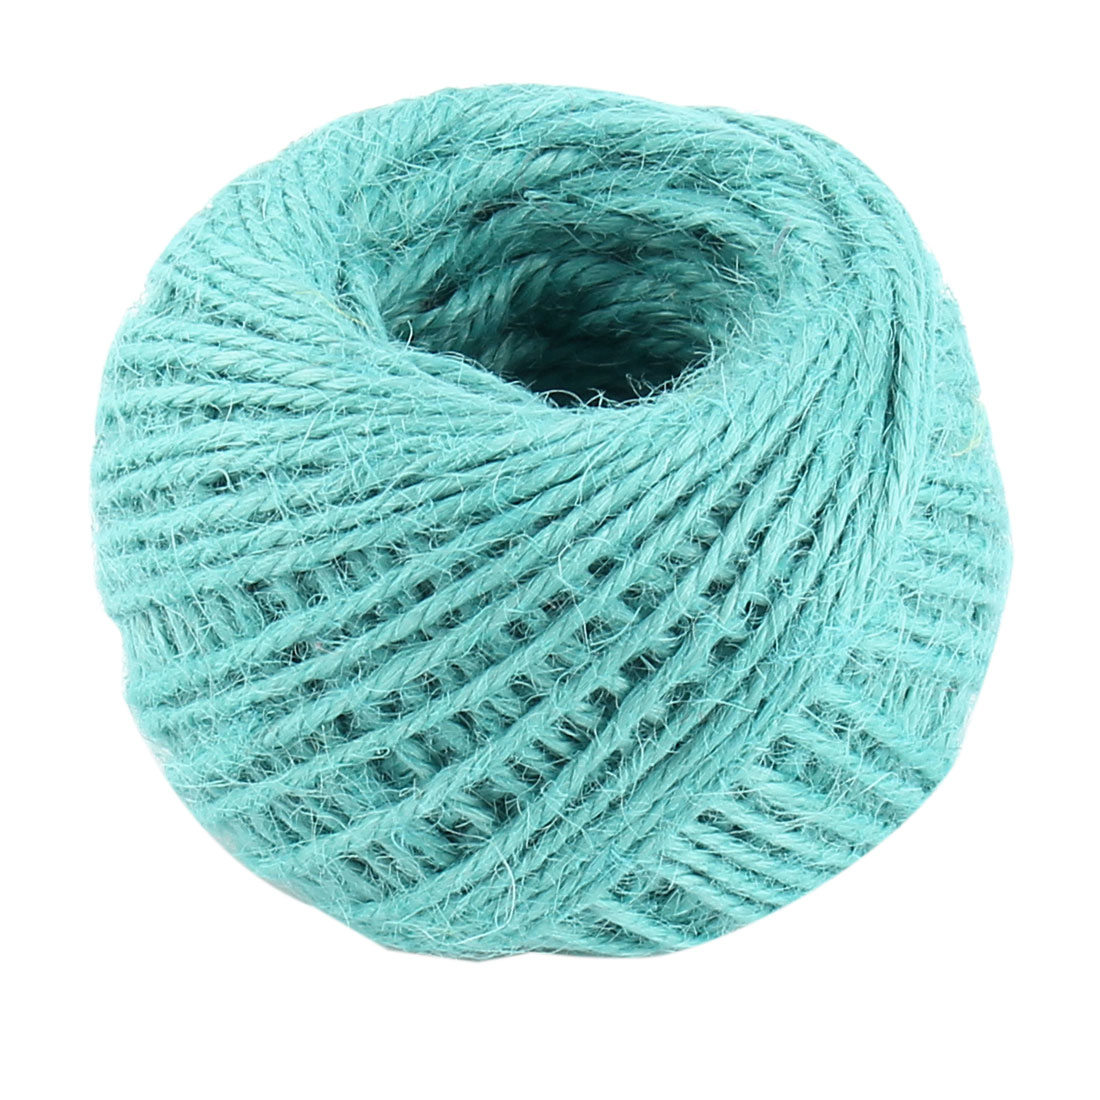 Craft Jute Burlap Ribbon Twine Rope Cord String Pack Roll Sky Blue 2mm Dia 50m Length